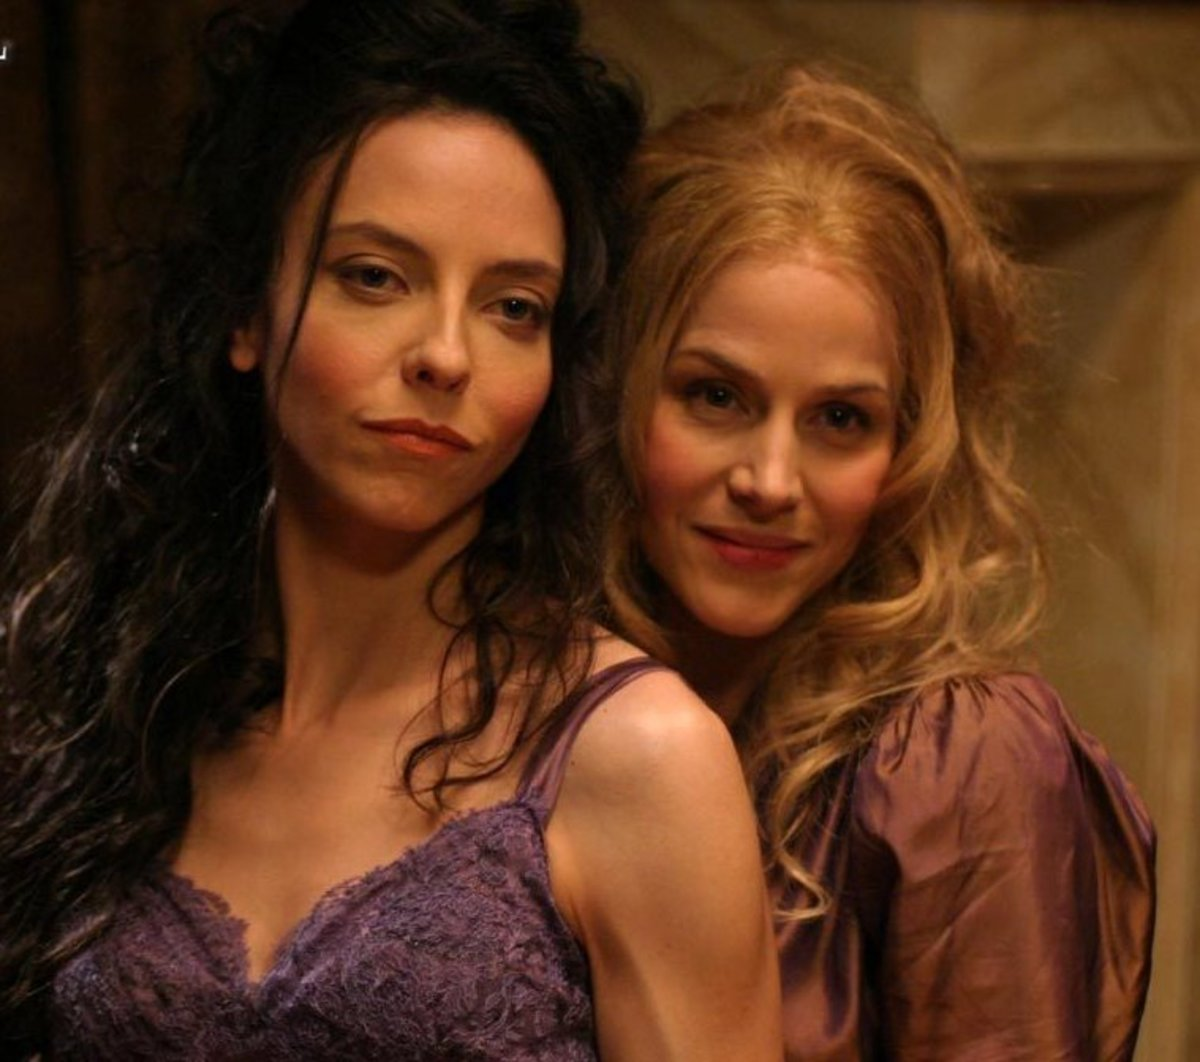 Darla and Drusilla